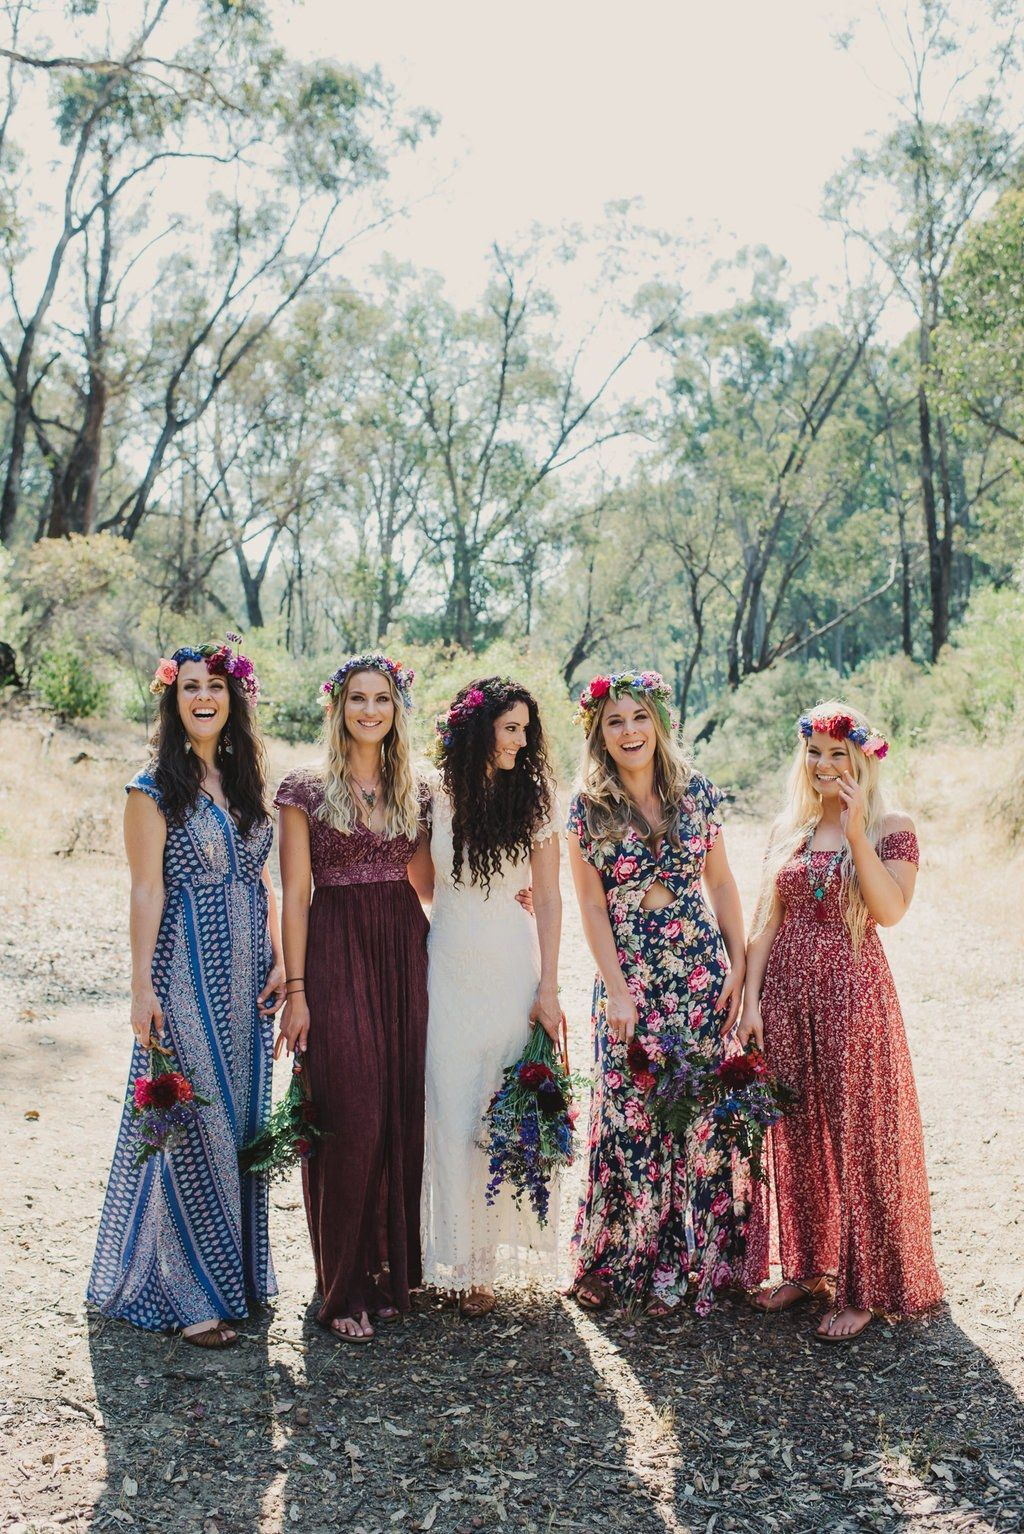 Mismatched bridesmaid dresses tips to pull it off beautifully